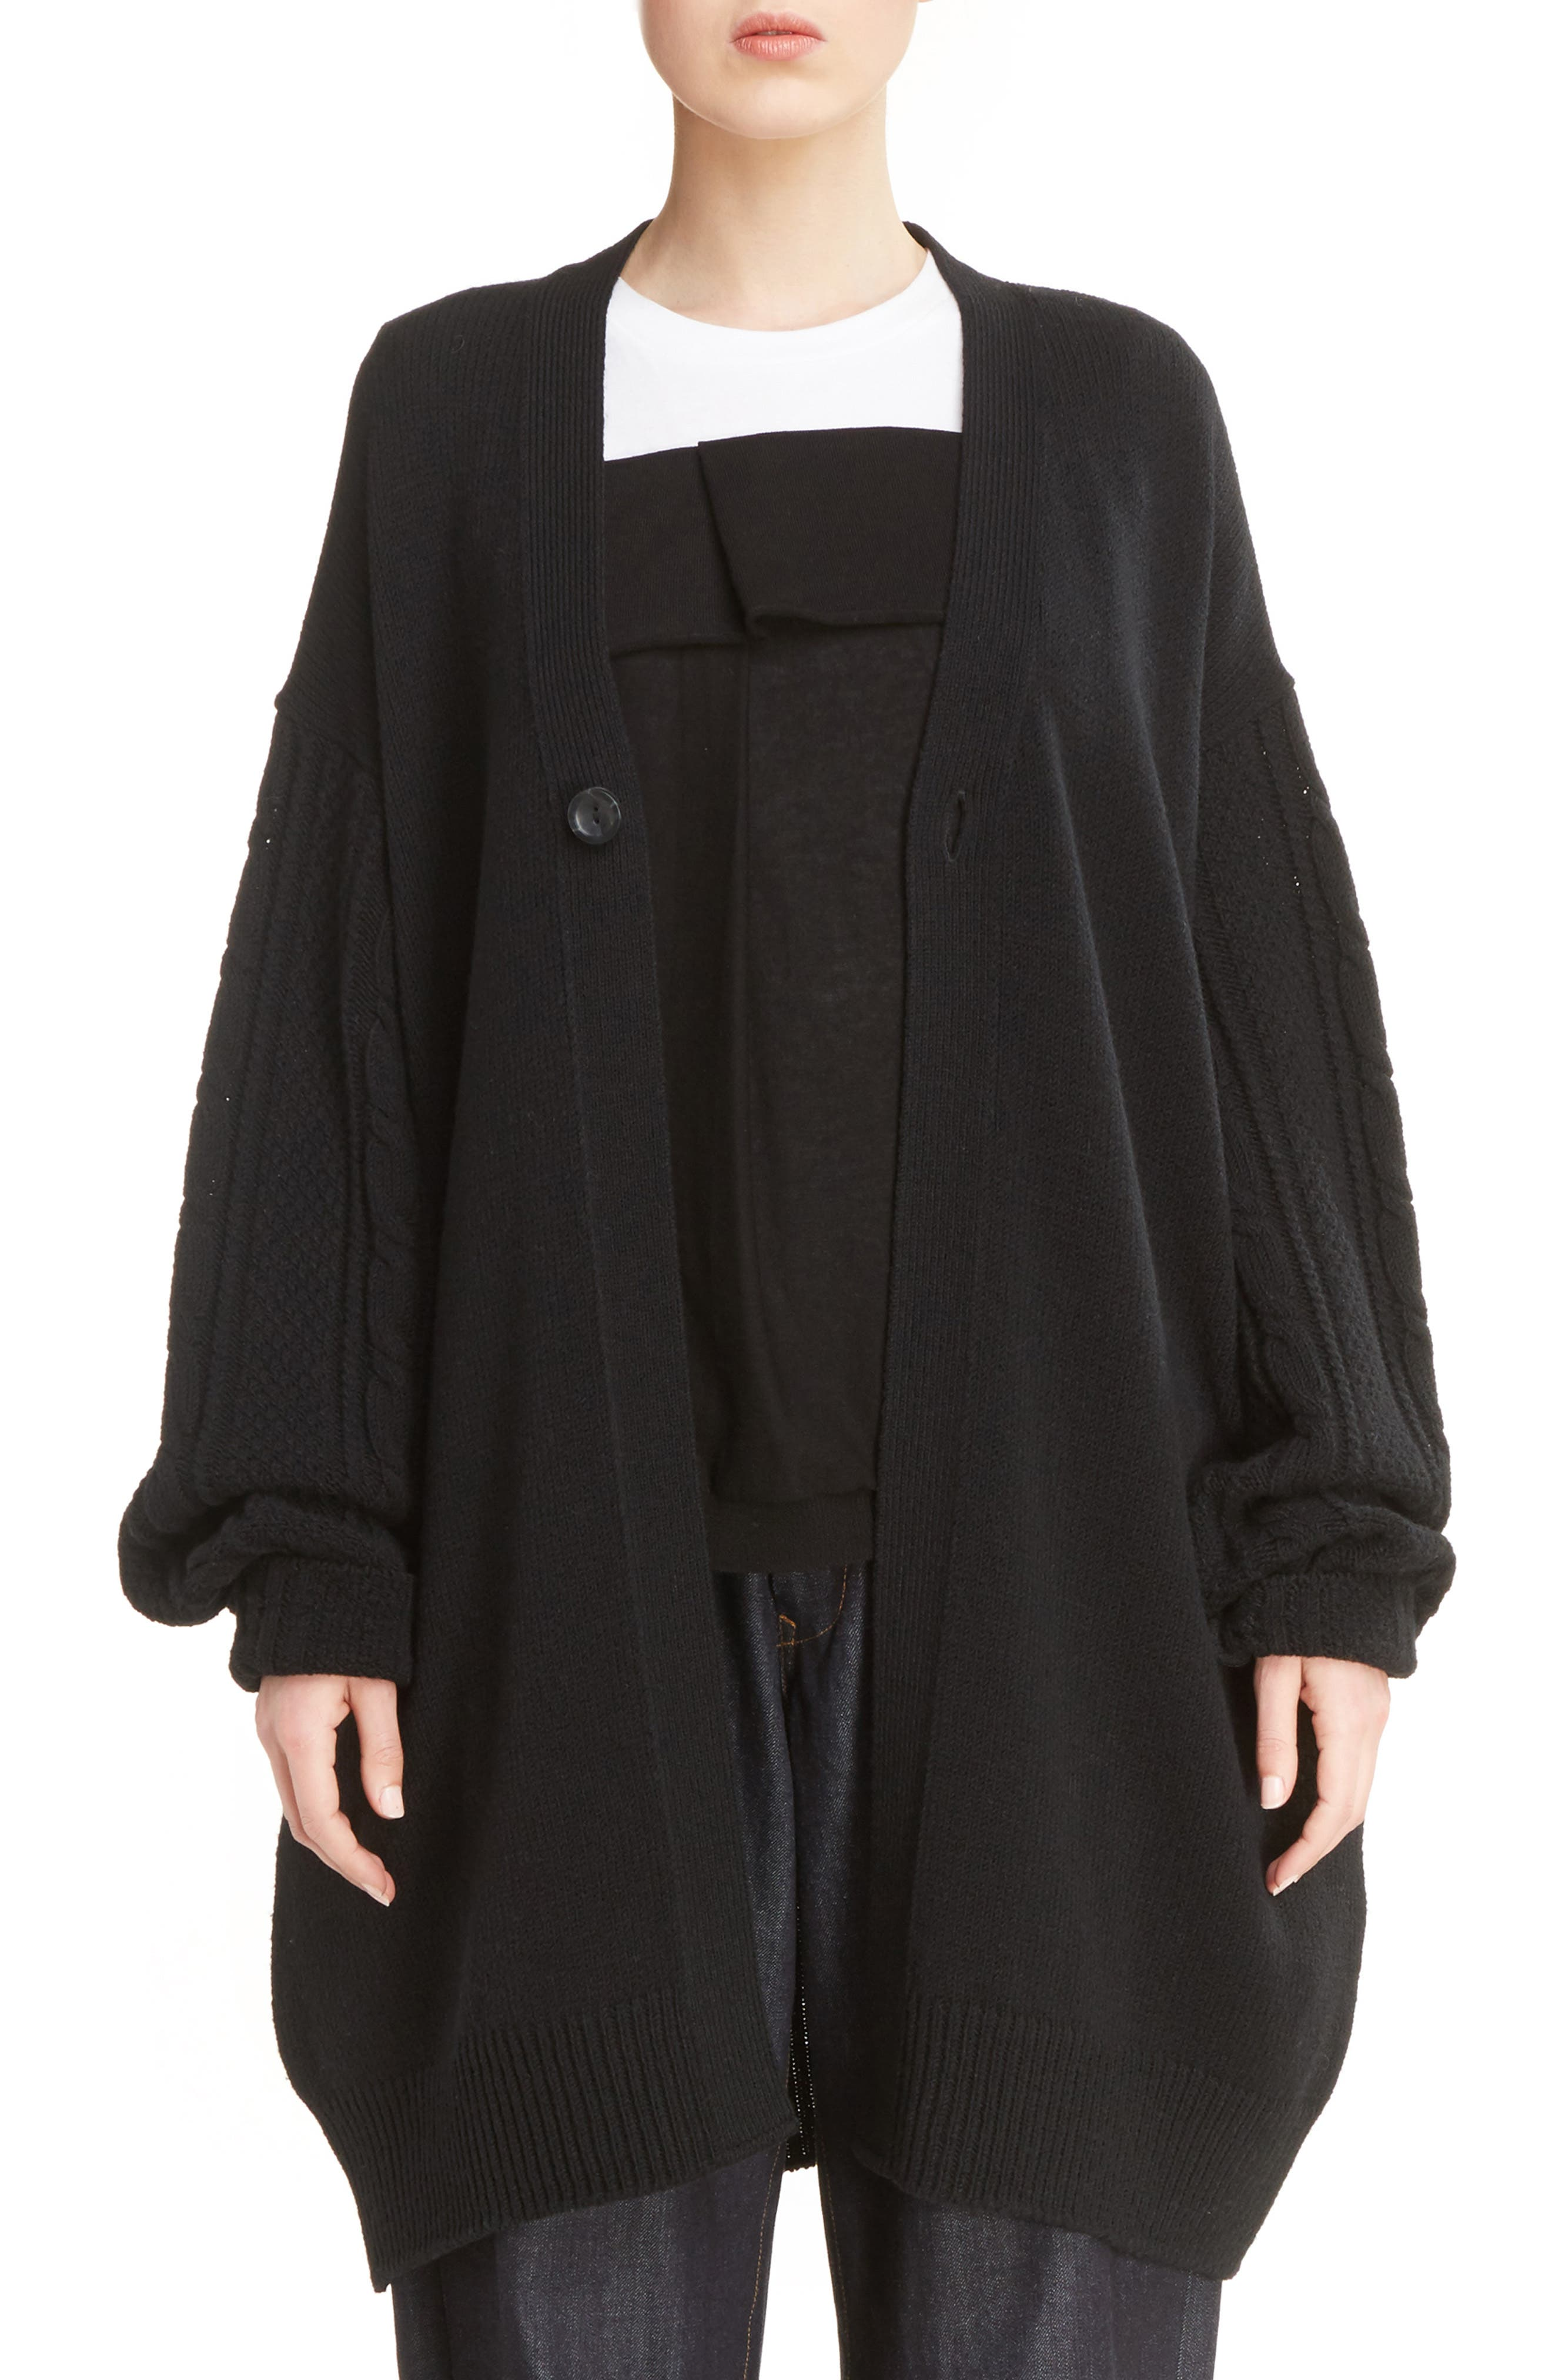 Alternate Image 1 Selected - Y's by Yohji Yamamoto Alan Button Cardigan